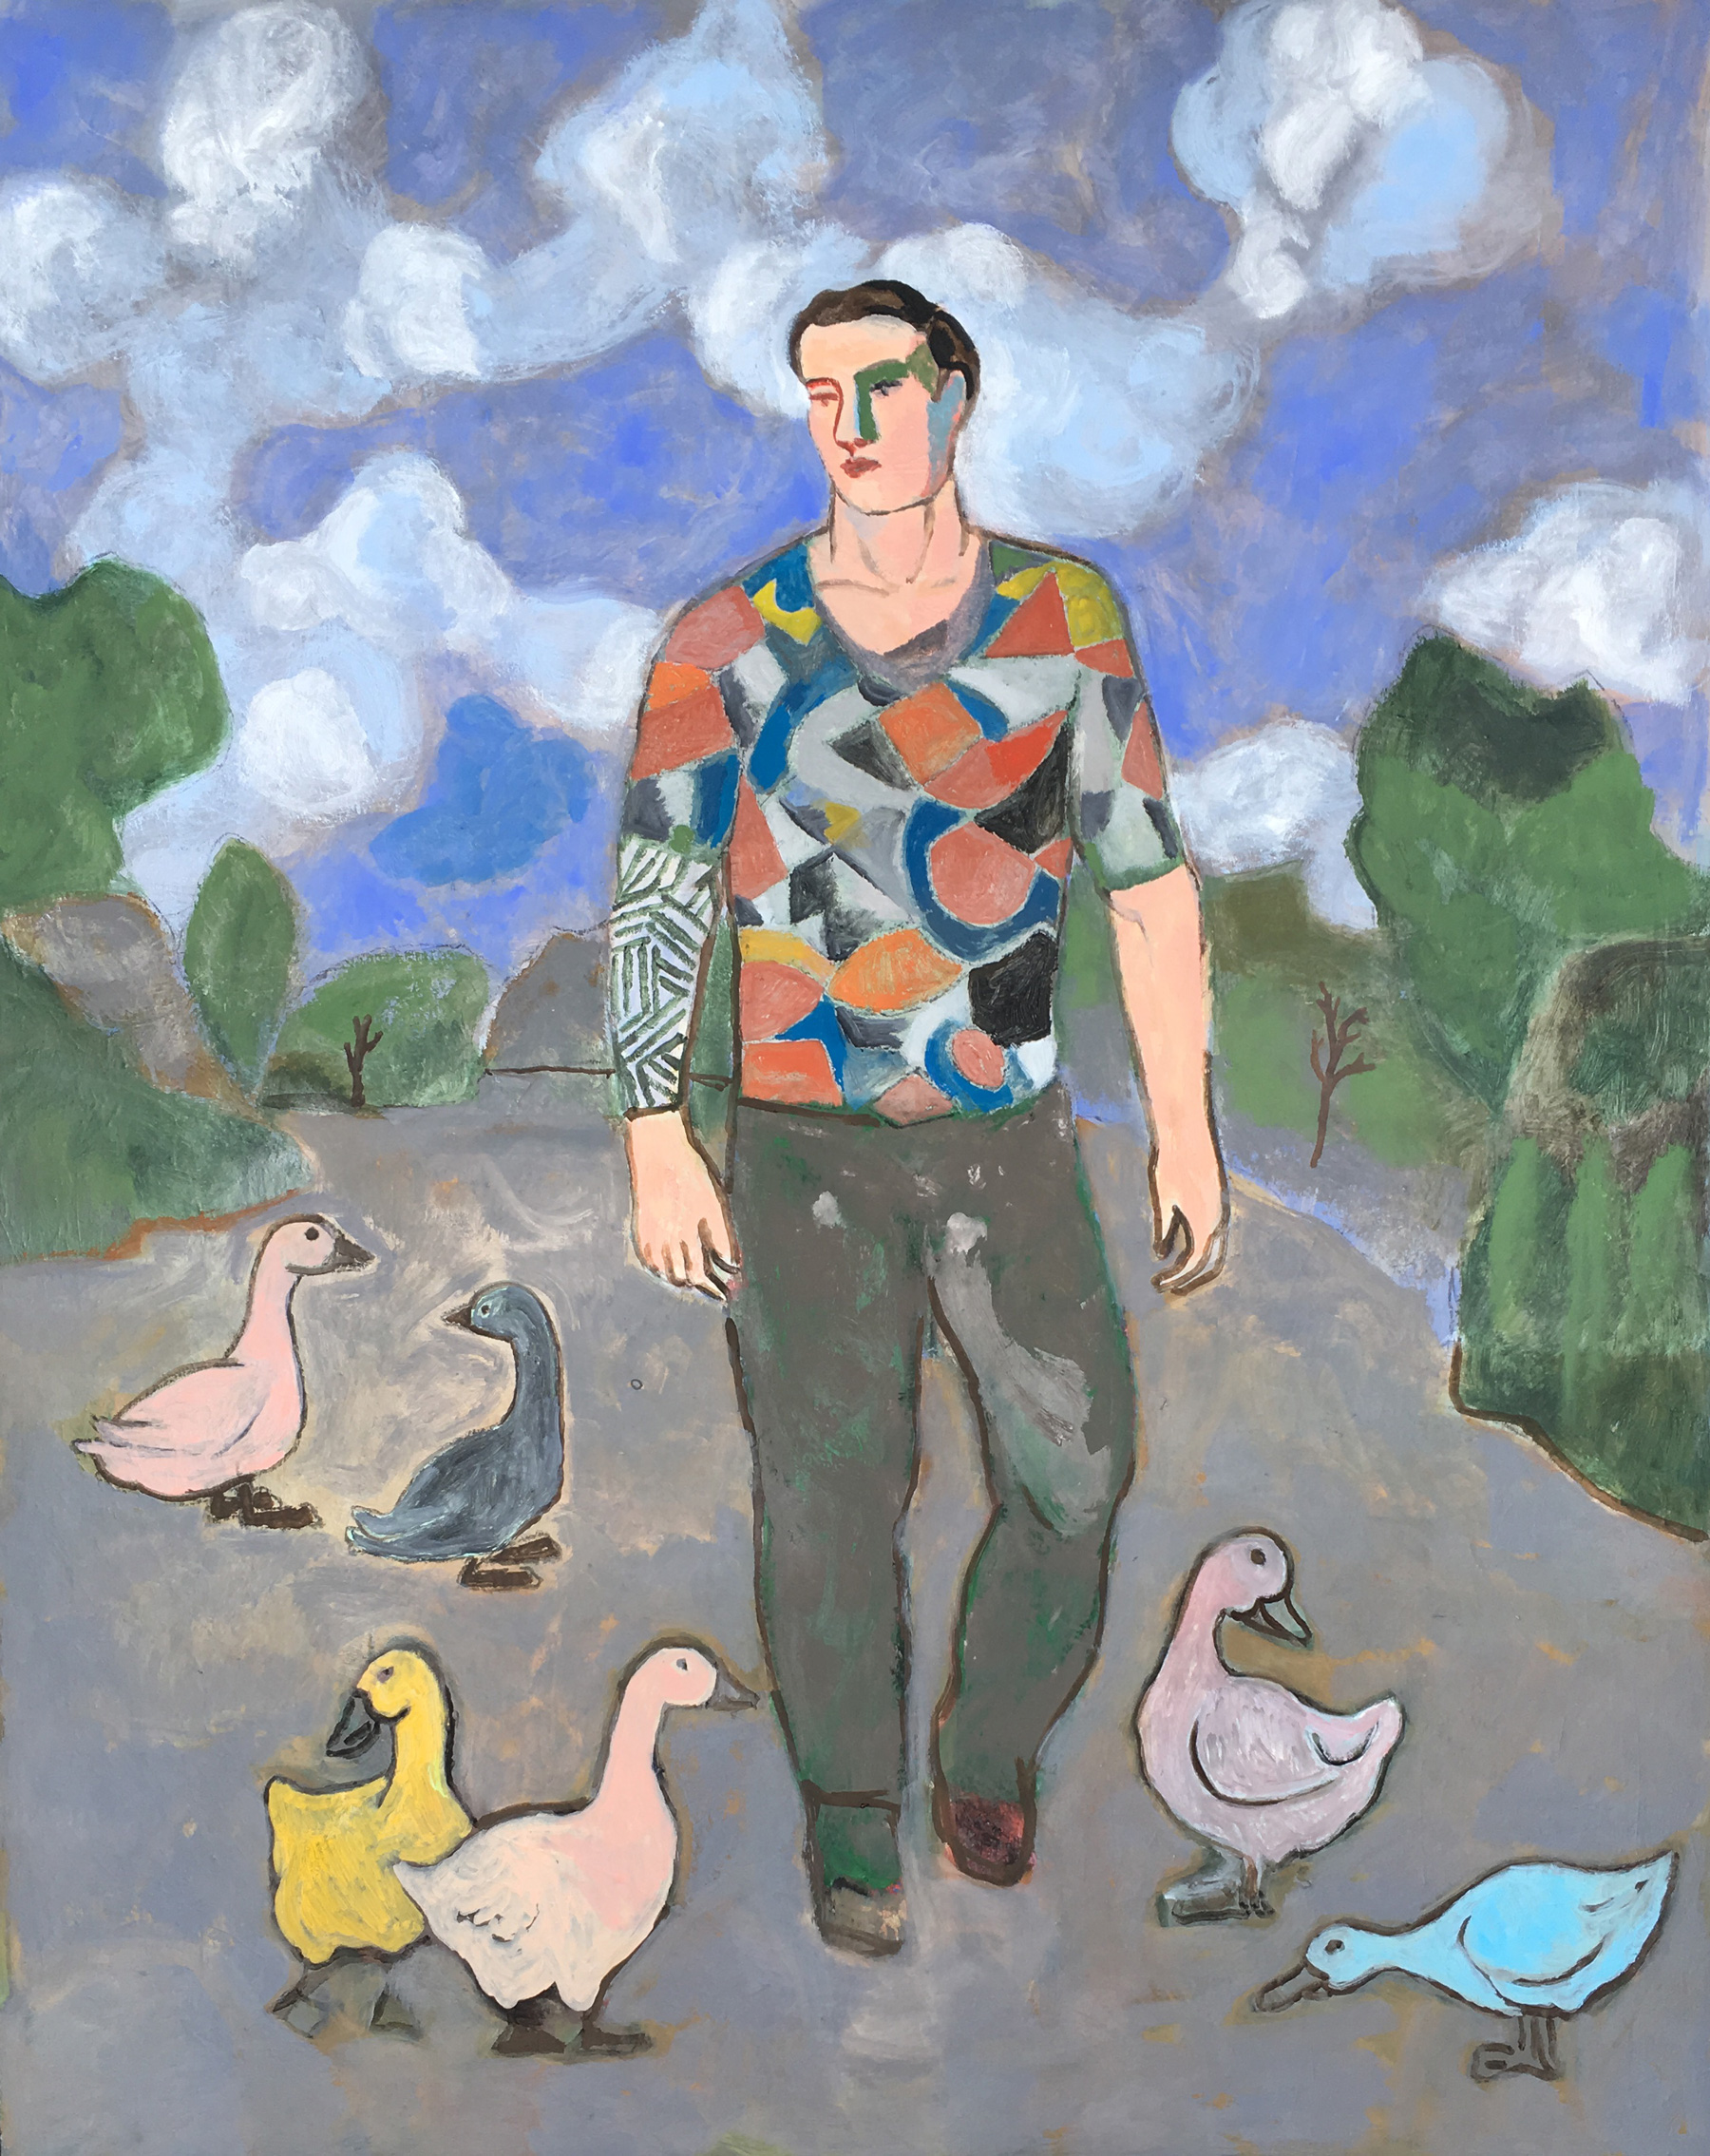 Sandro Chia, The Wayfarer With Ducks, 2017, oil on canvas, 60.24 x 48 inches (courtesy of Marc Strauss Gallery)